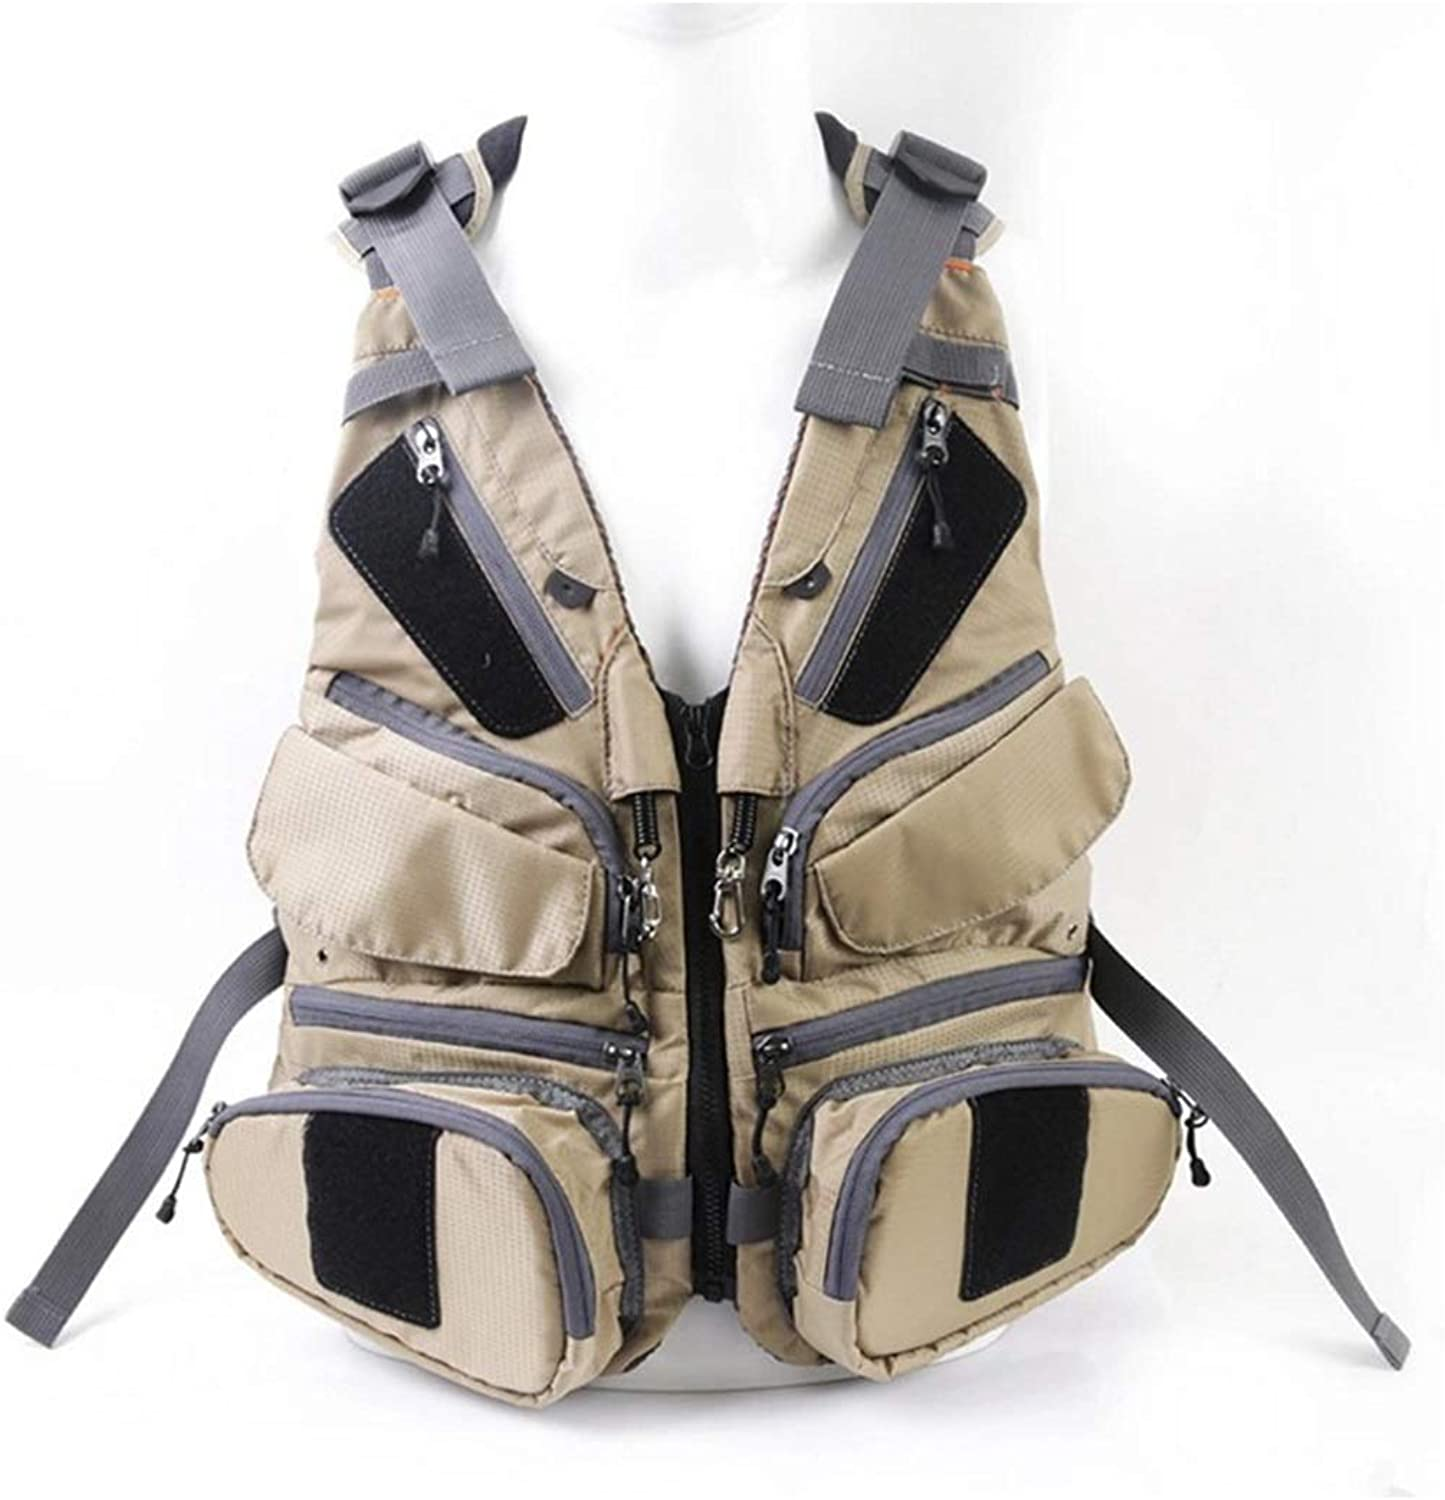 FELICIKK Fly Fishing Backpack Vest Combo Chest Pack for Tackle Gear and Accessories